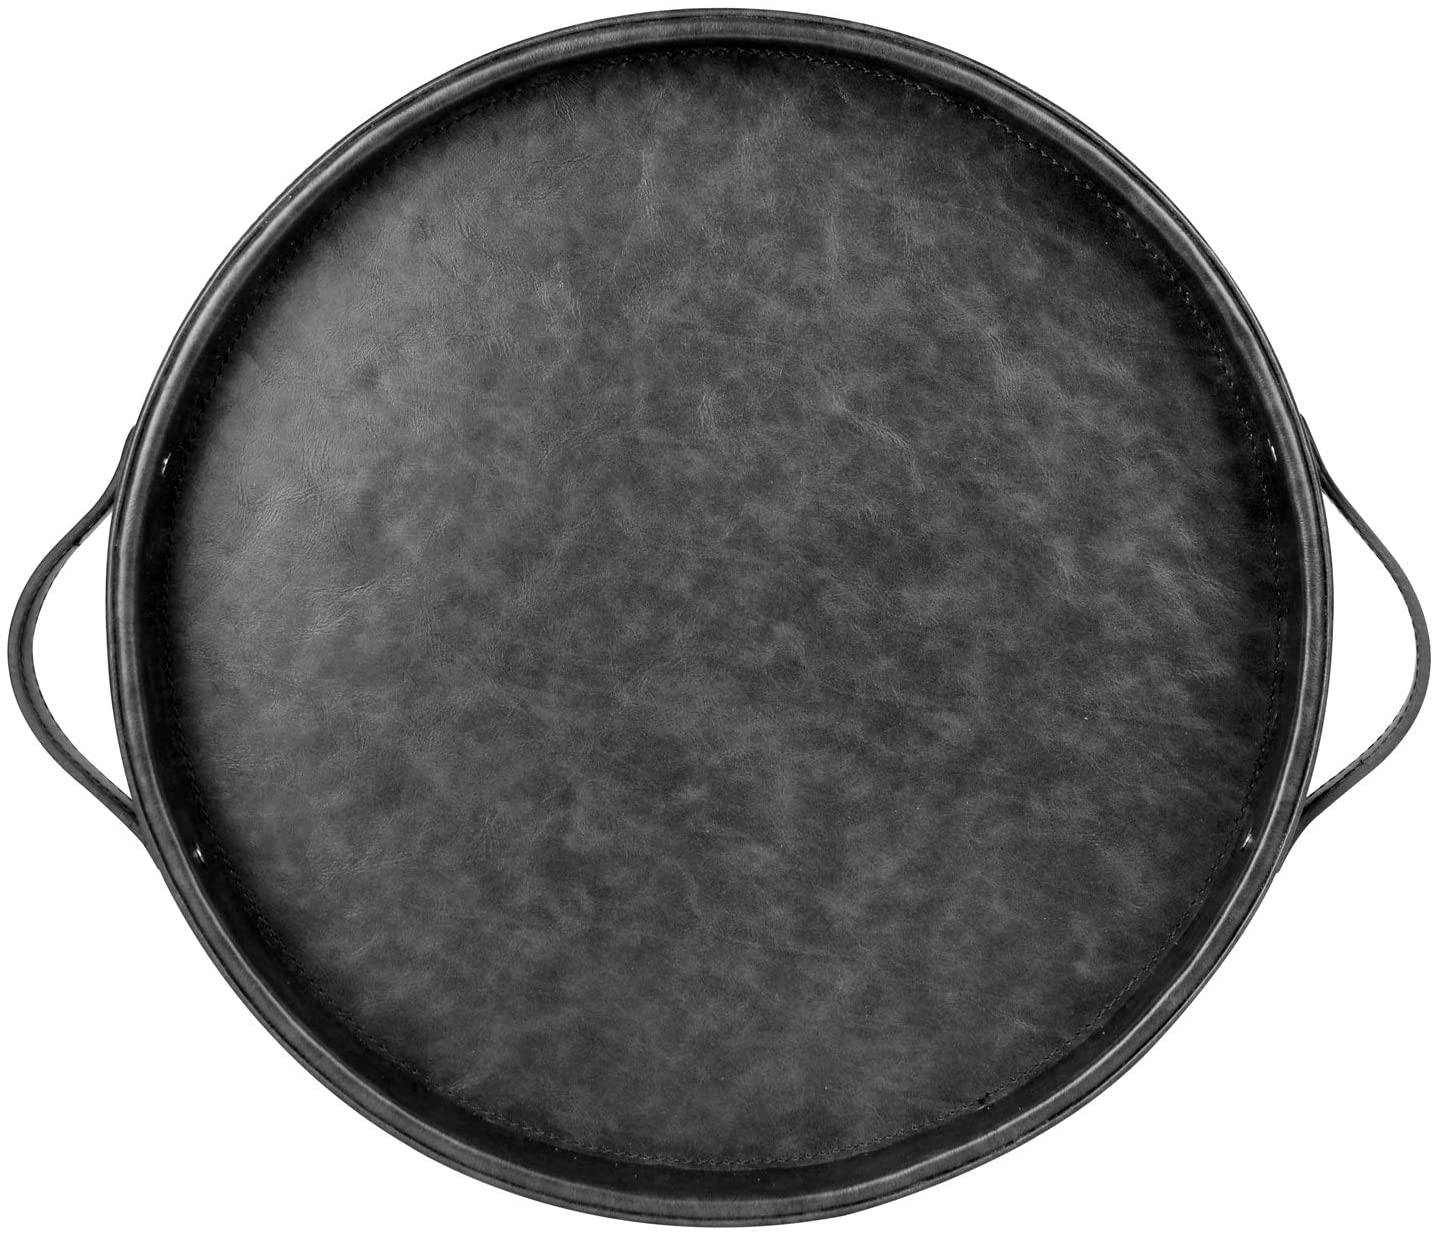 HofferRuffer Top Nocth PU Leather Round Serving Tray, Decorative Serving Tray with Handles, Coffee Tray, Ottoman Tray for Home Or Office, Diameter 14.6-inch (Dark Grey)